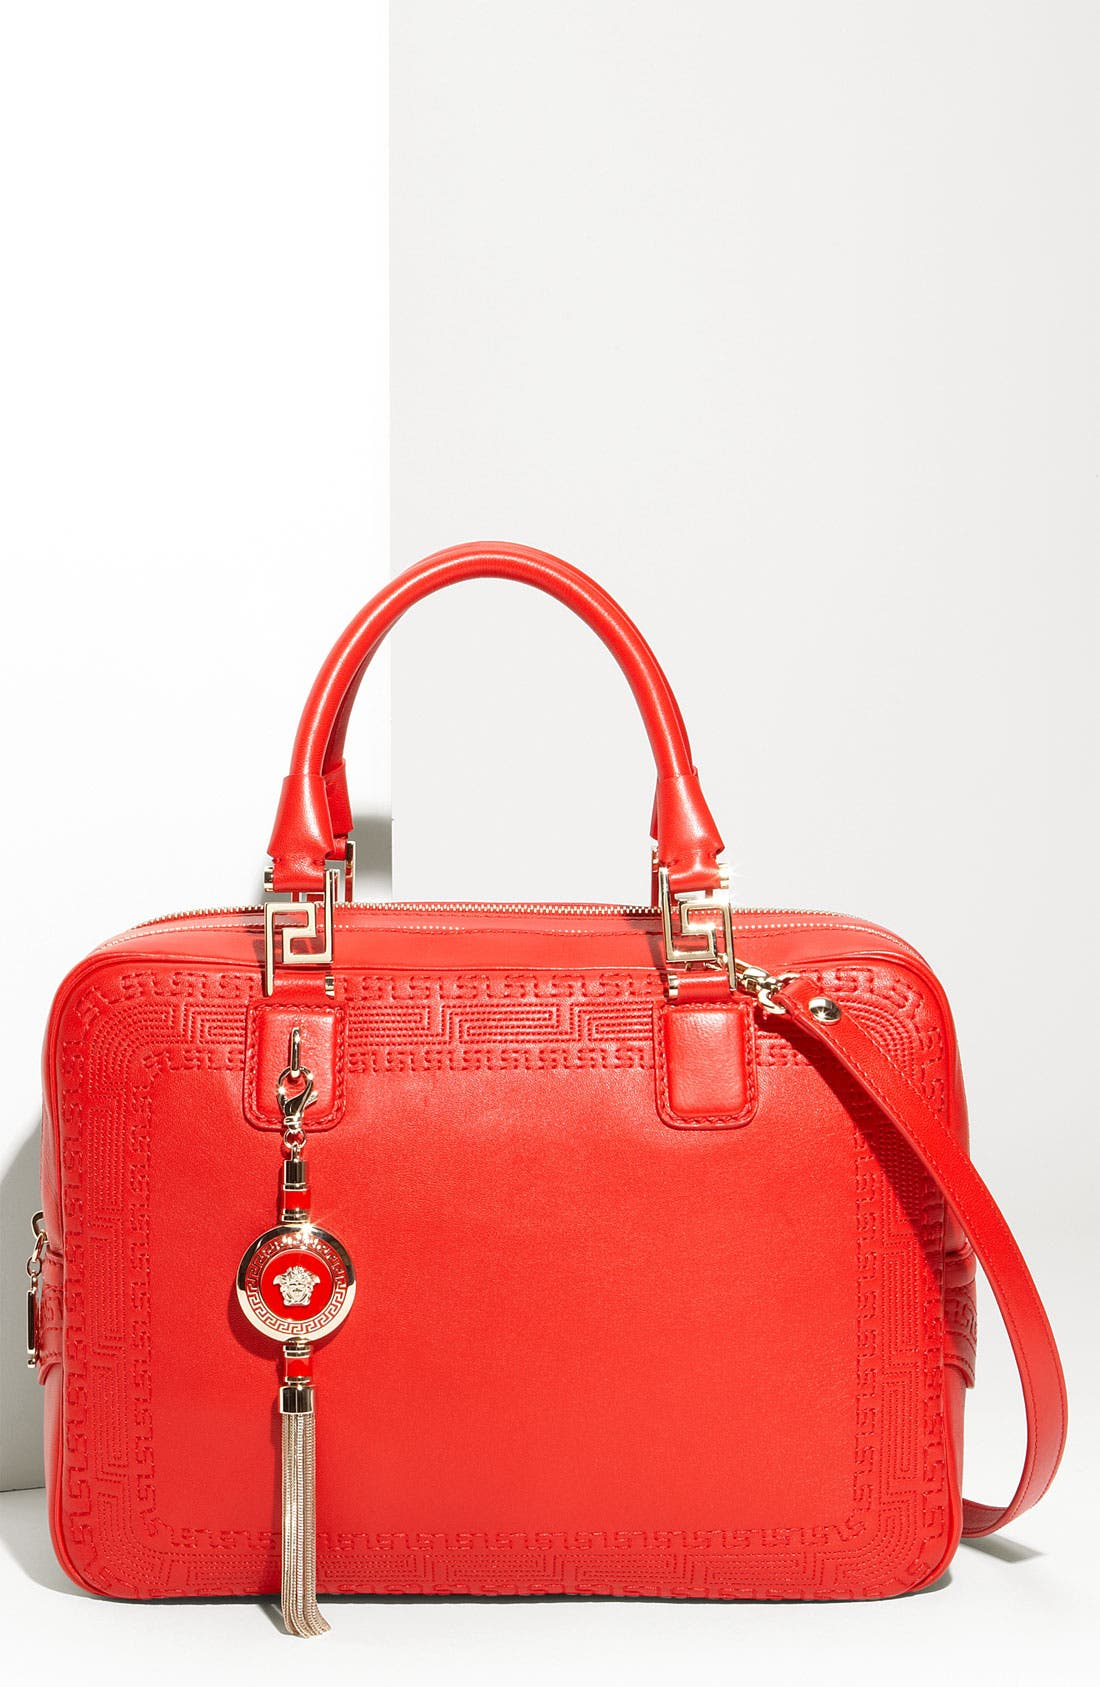 Alternate Image 1 Selected - Versace Leather Satchel